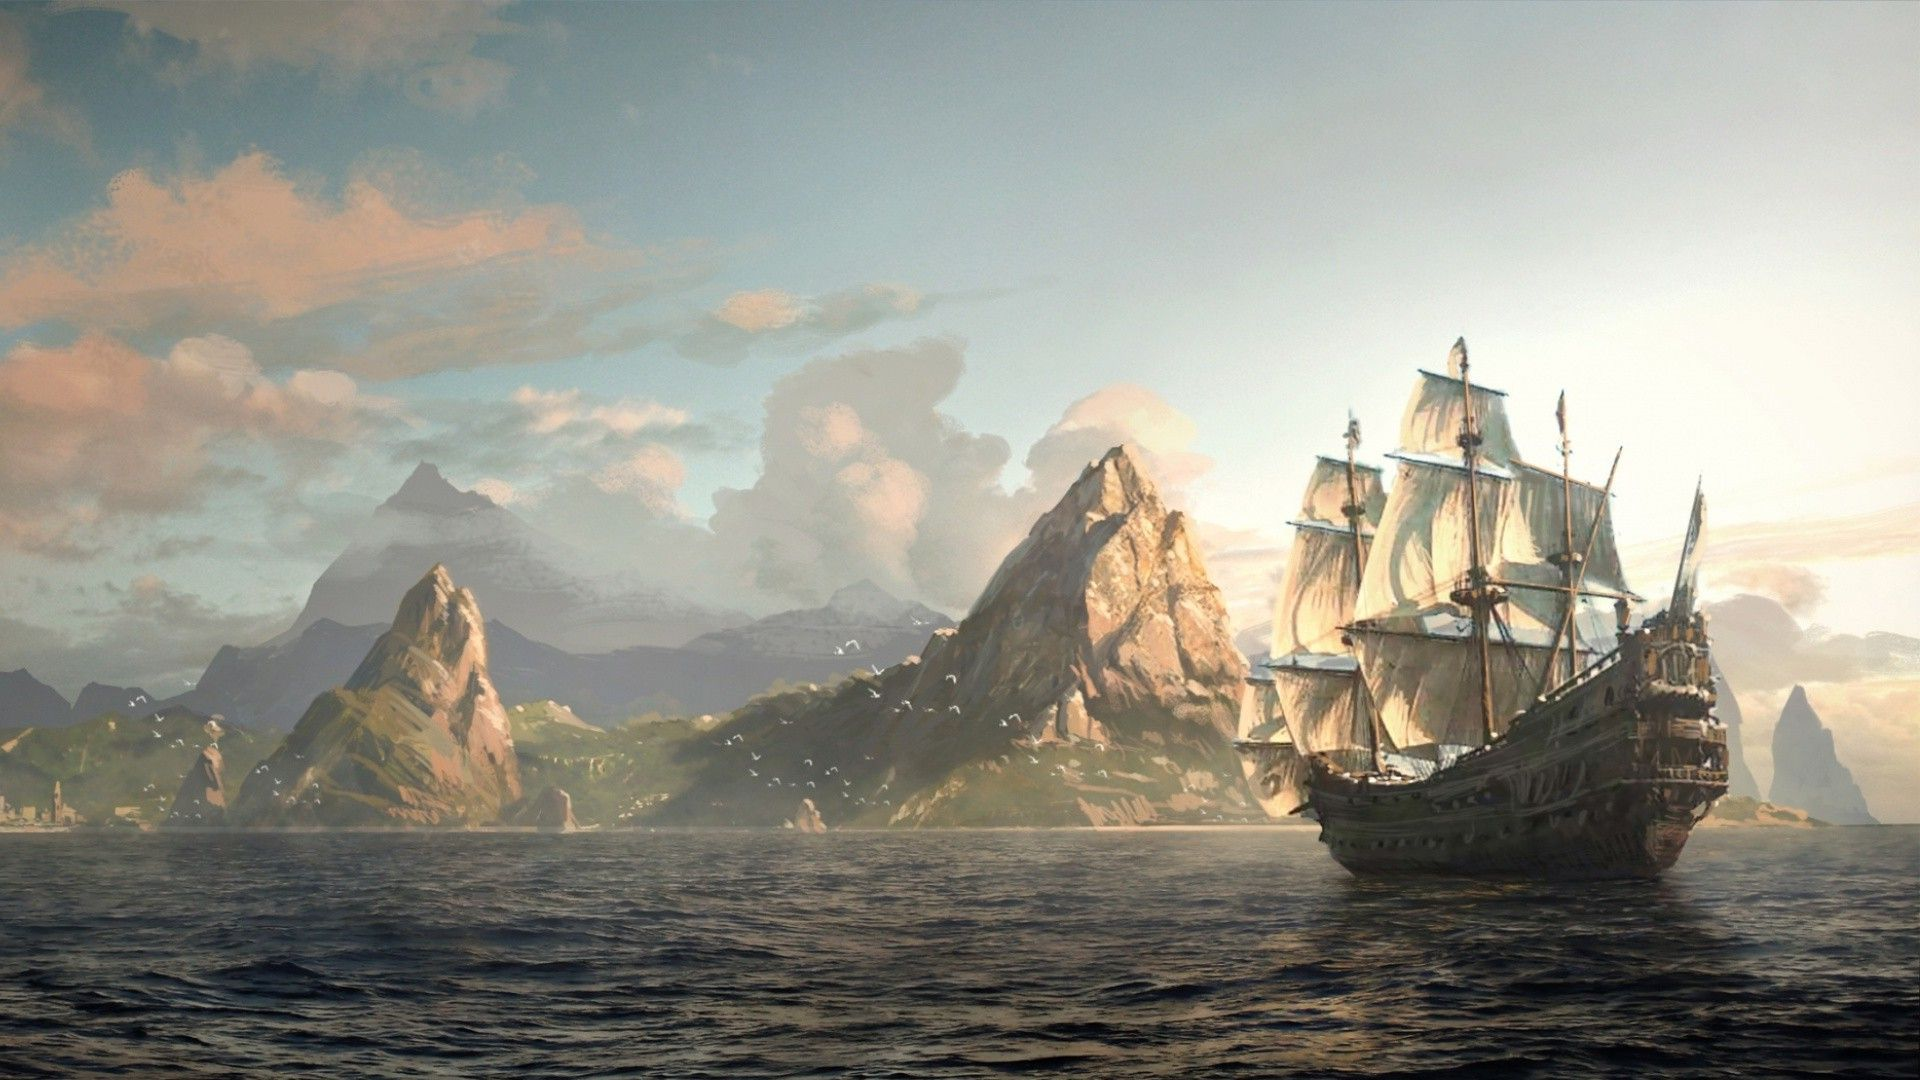 Free Download Assassins Creed Iv Black Flag Wallpaper 1070027